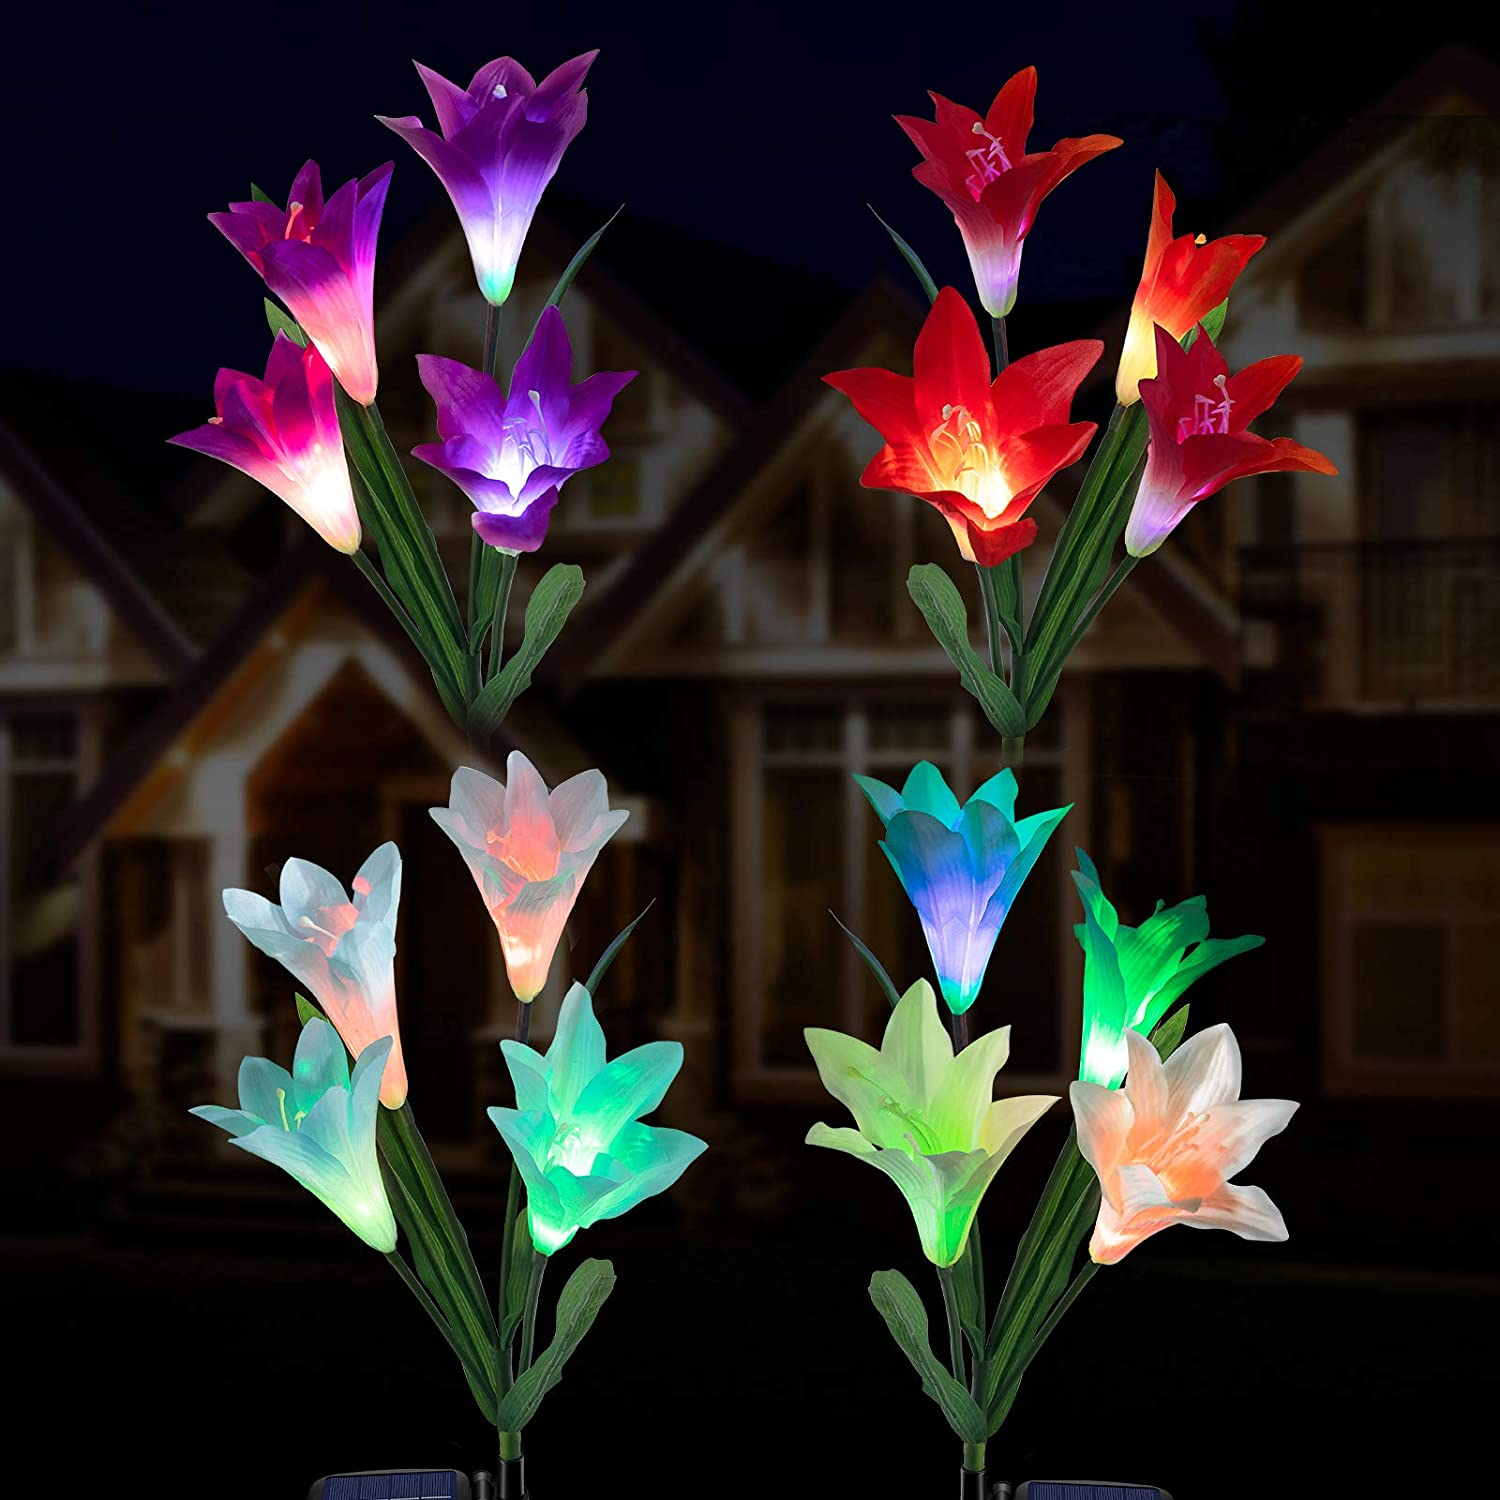 Outdoor Solar Flower Lights - 4 Pack Solar Garden Lights Color Changing with16 Larger Lily Flowers, Waterpoof Solar Garden Stake Lights for Lawn Patio Pathway Yard Farm Wedding Decoration